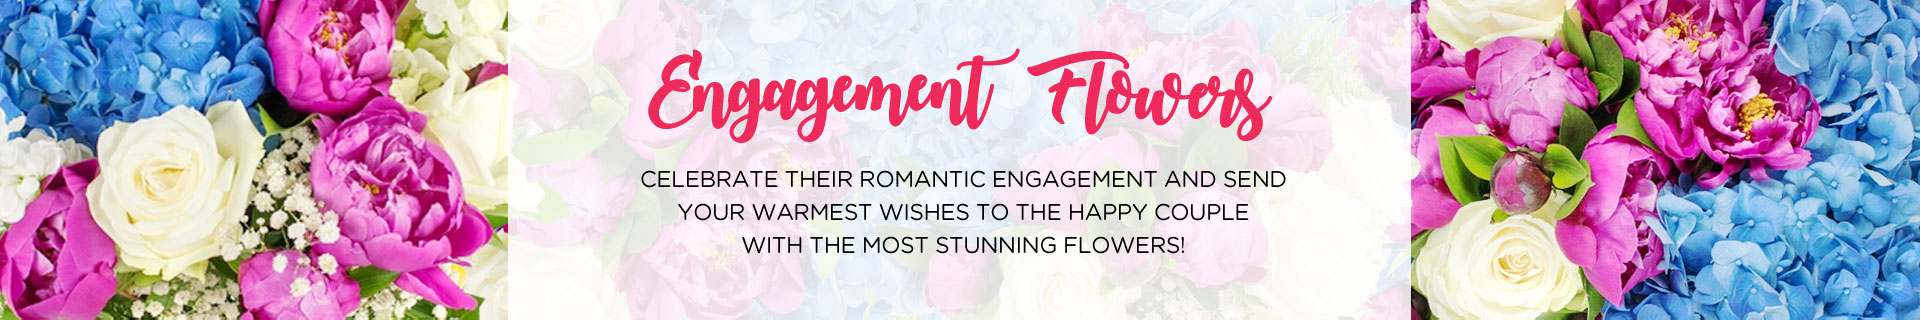 Engagement Flowers